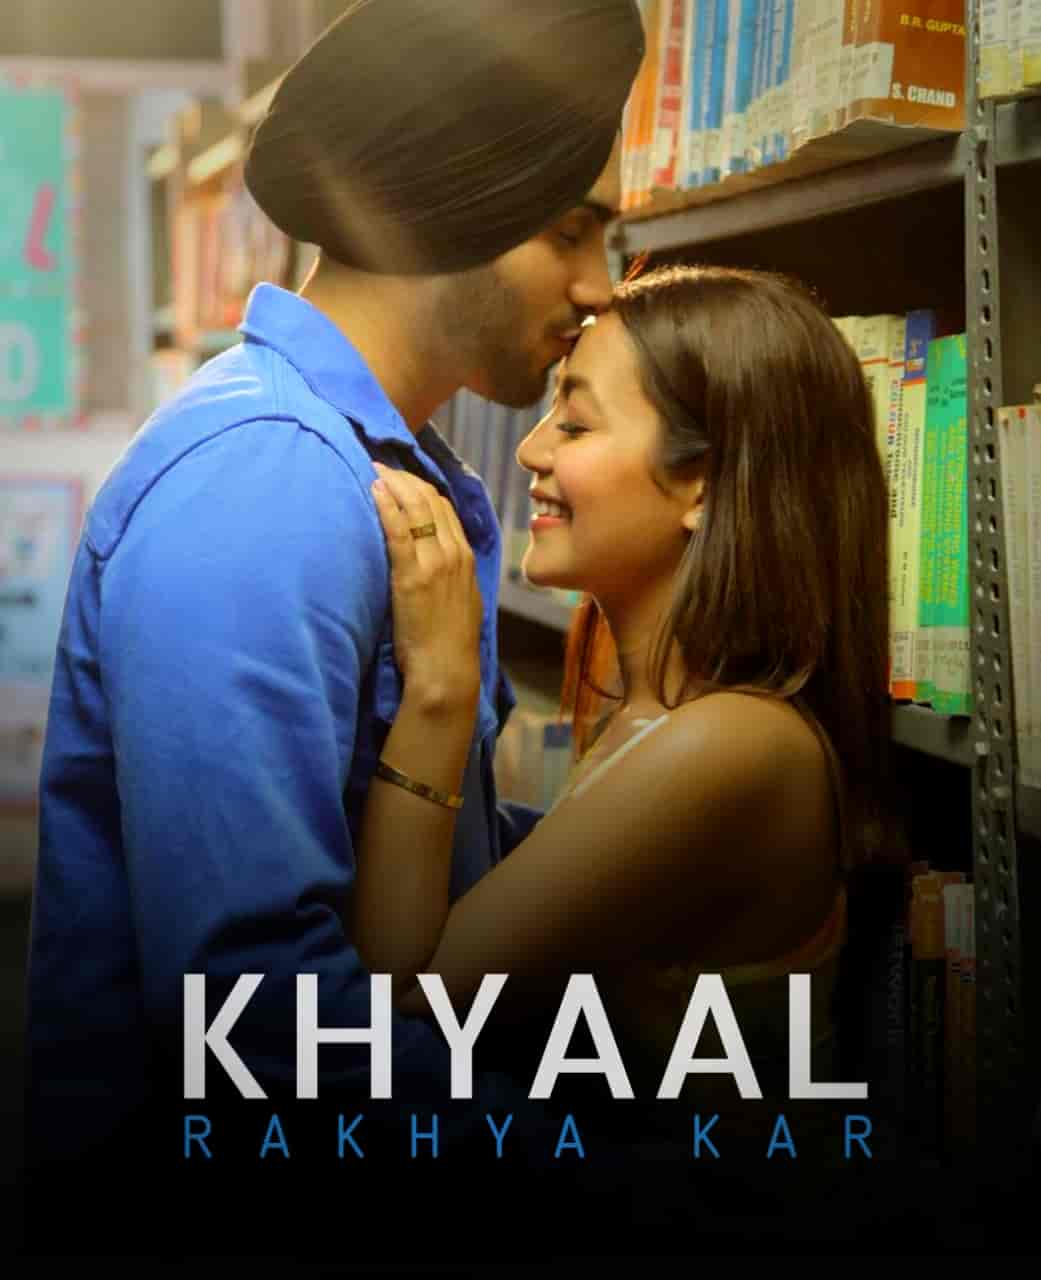 Khyaal Rakhya Kar Song Image Features Neha Kakkar and Rohanpreet